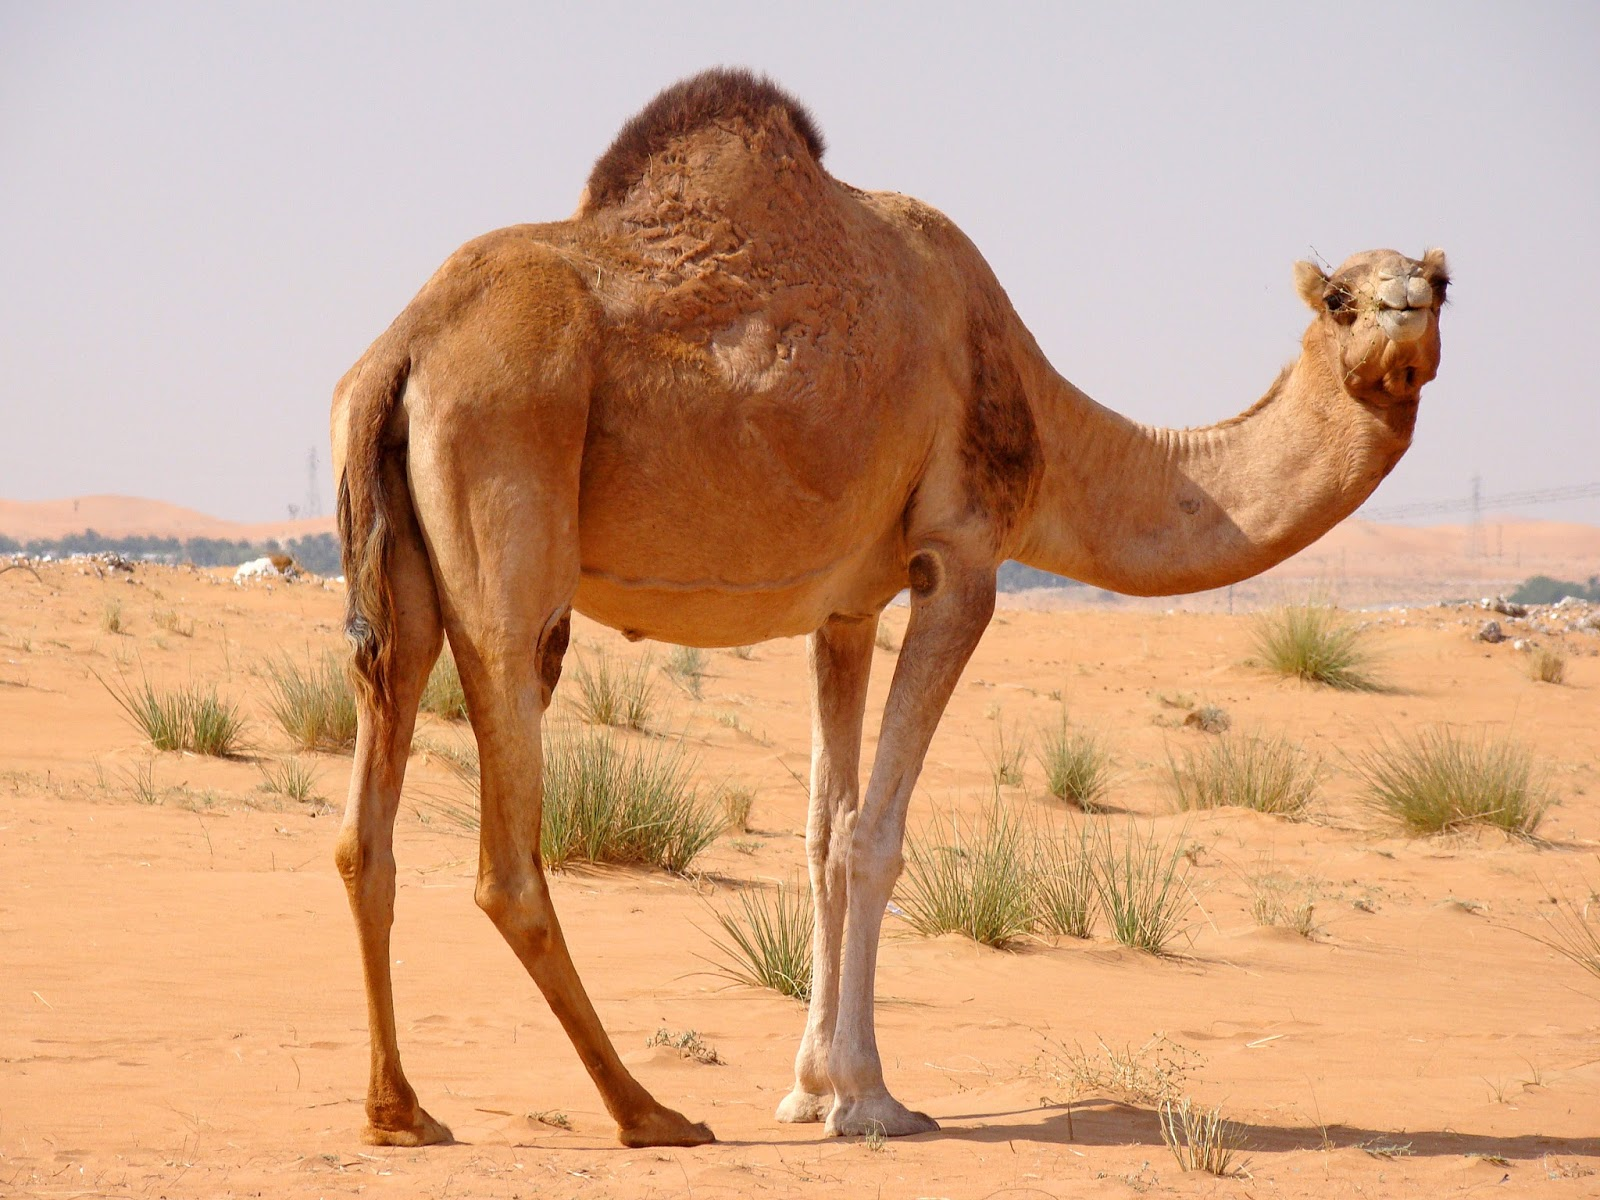 For evolution to be true and a camel to evolve all the special adaptations that it has for the desert, it would need to be living in the desert most of the ...